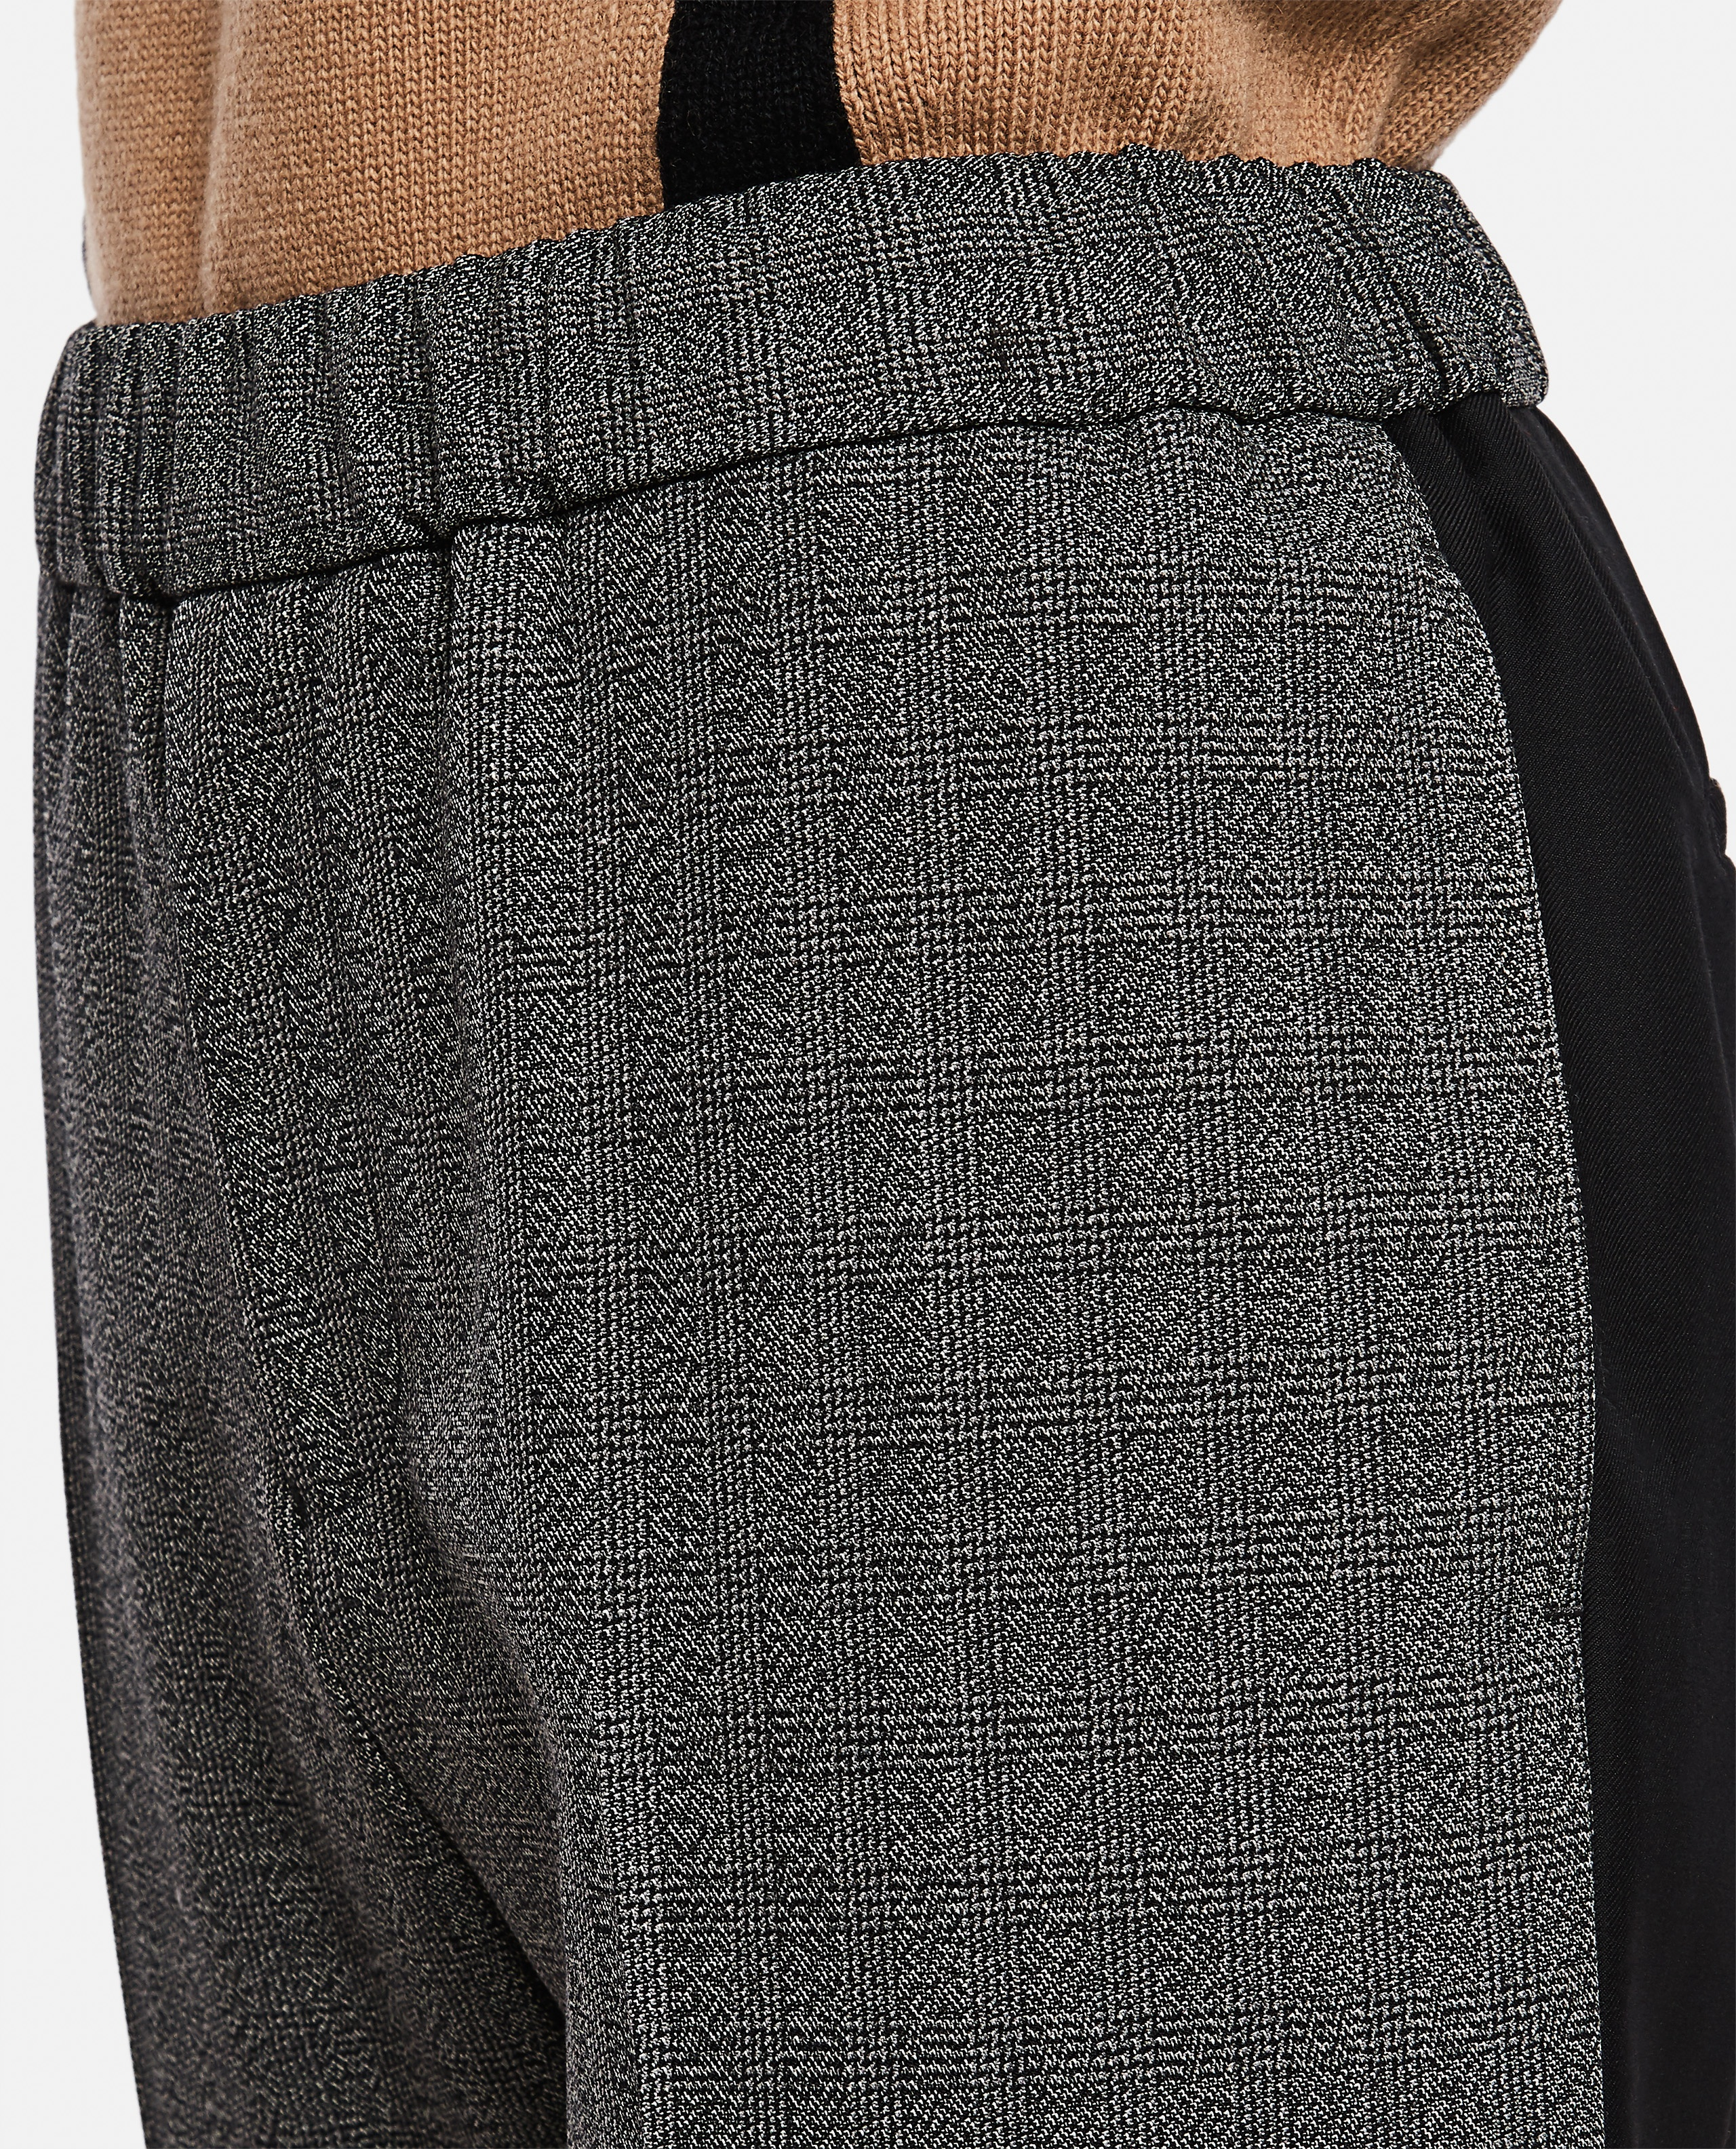 Prince of Wales trousers Men Givenchy 000280060041273 4